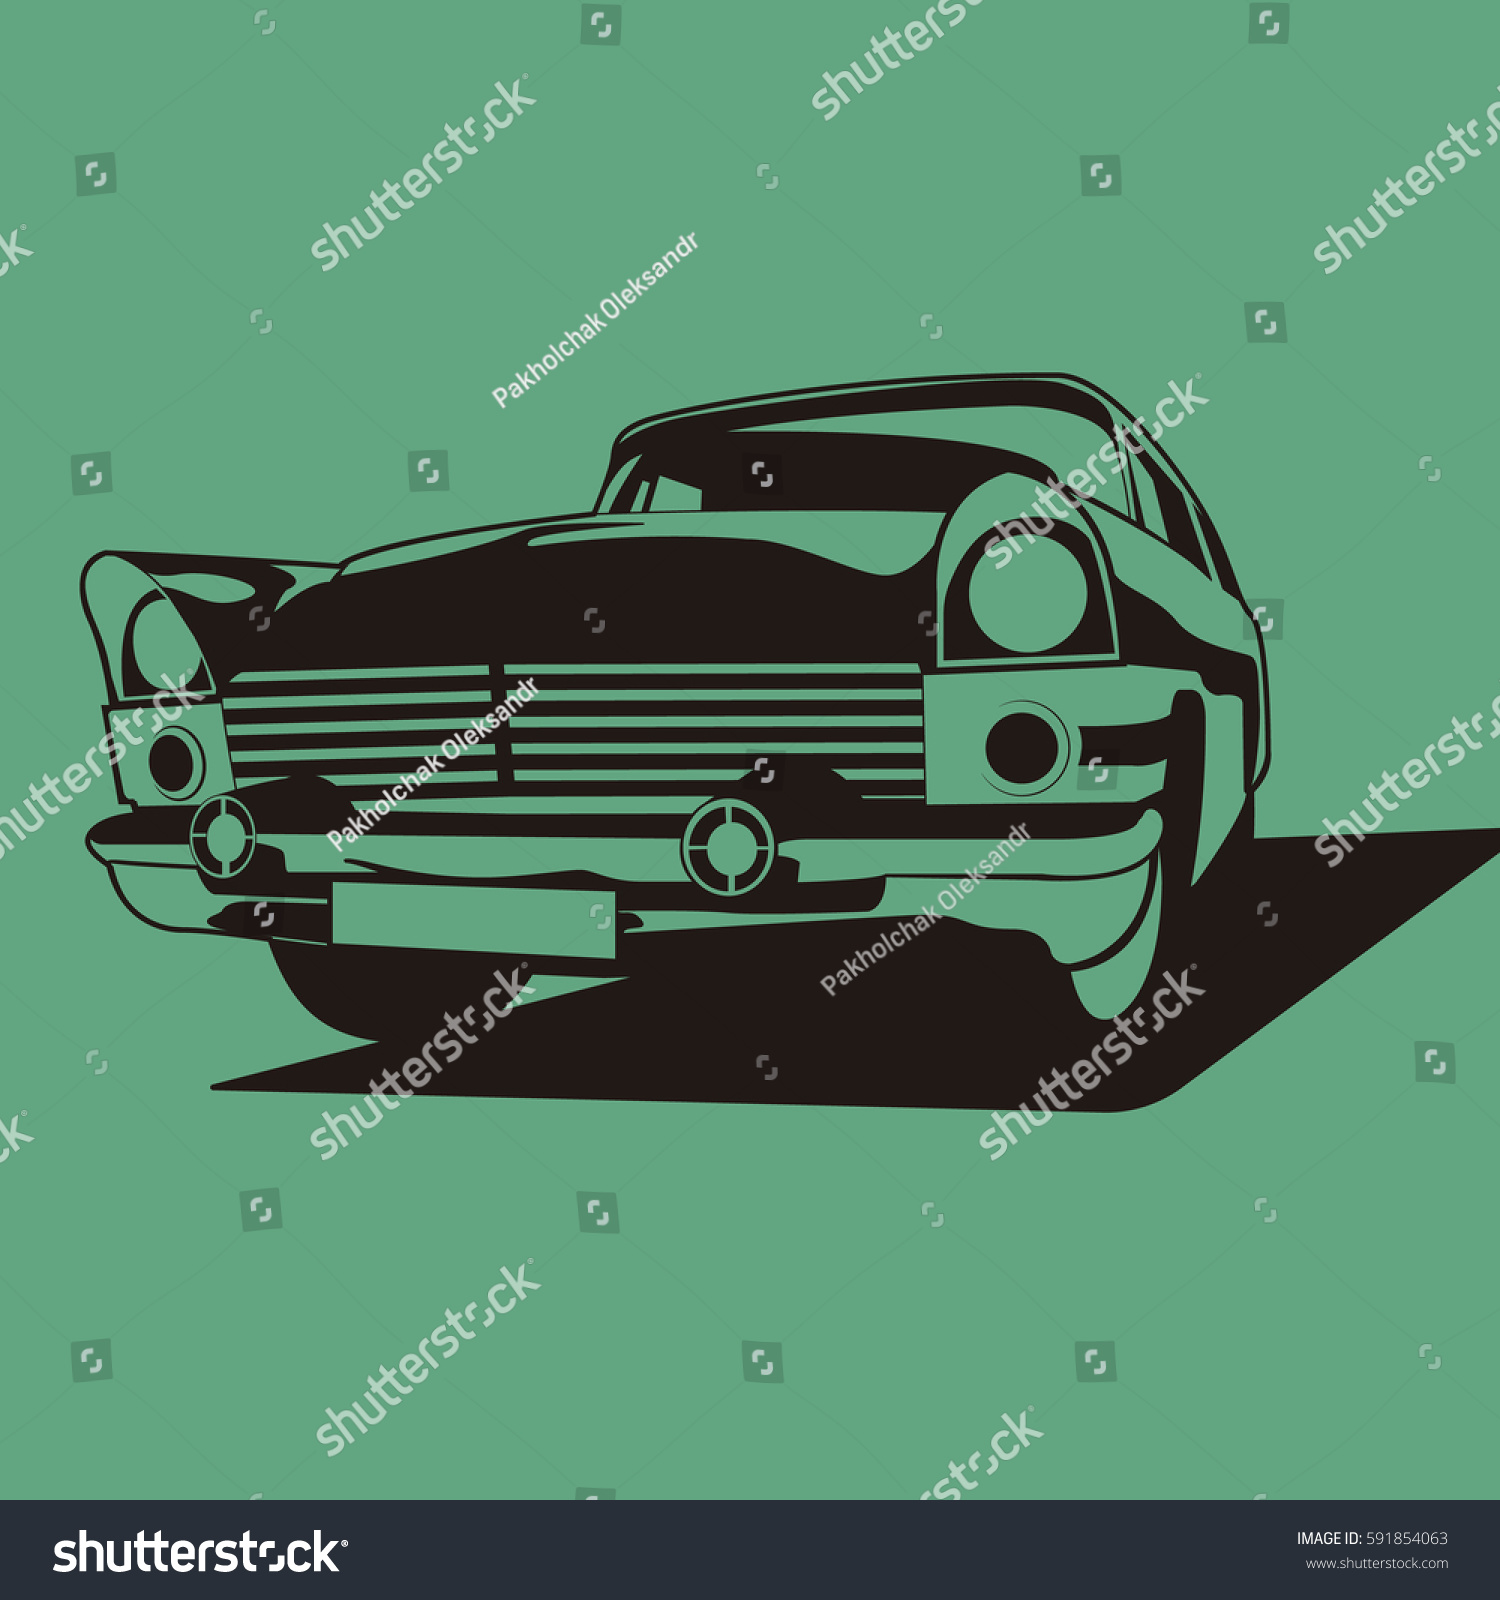 Retro Car Two Colors Black And DARK Turquoise